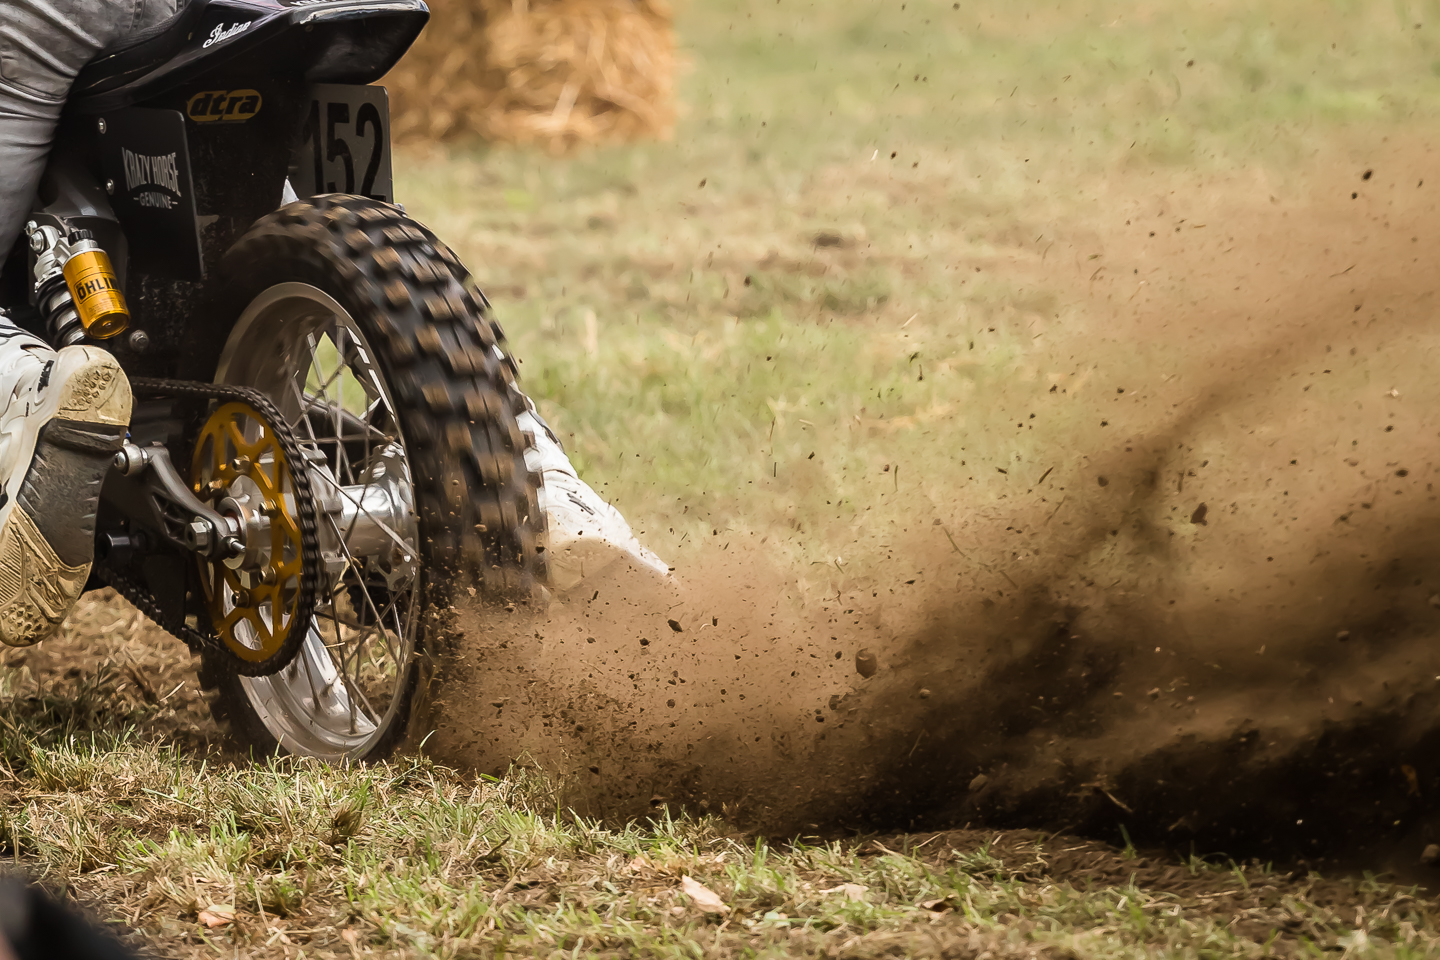 Motorcycle throwing up rooster tails of dirt